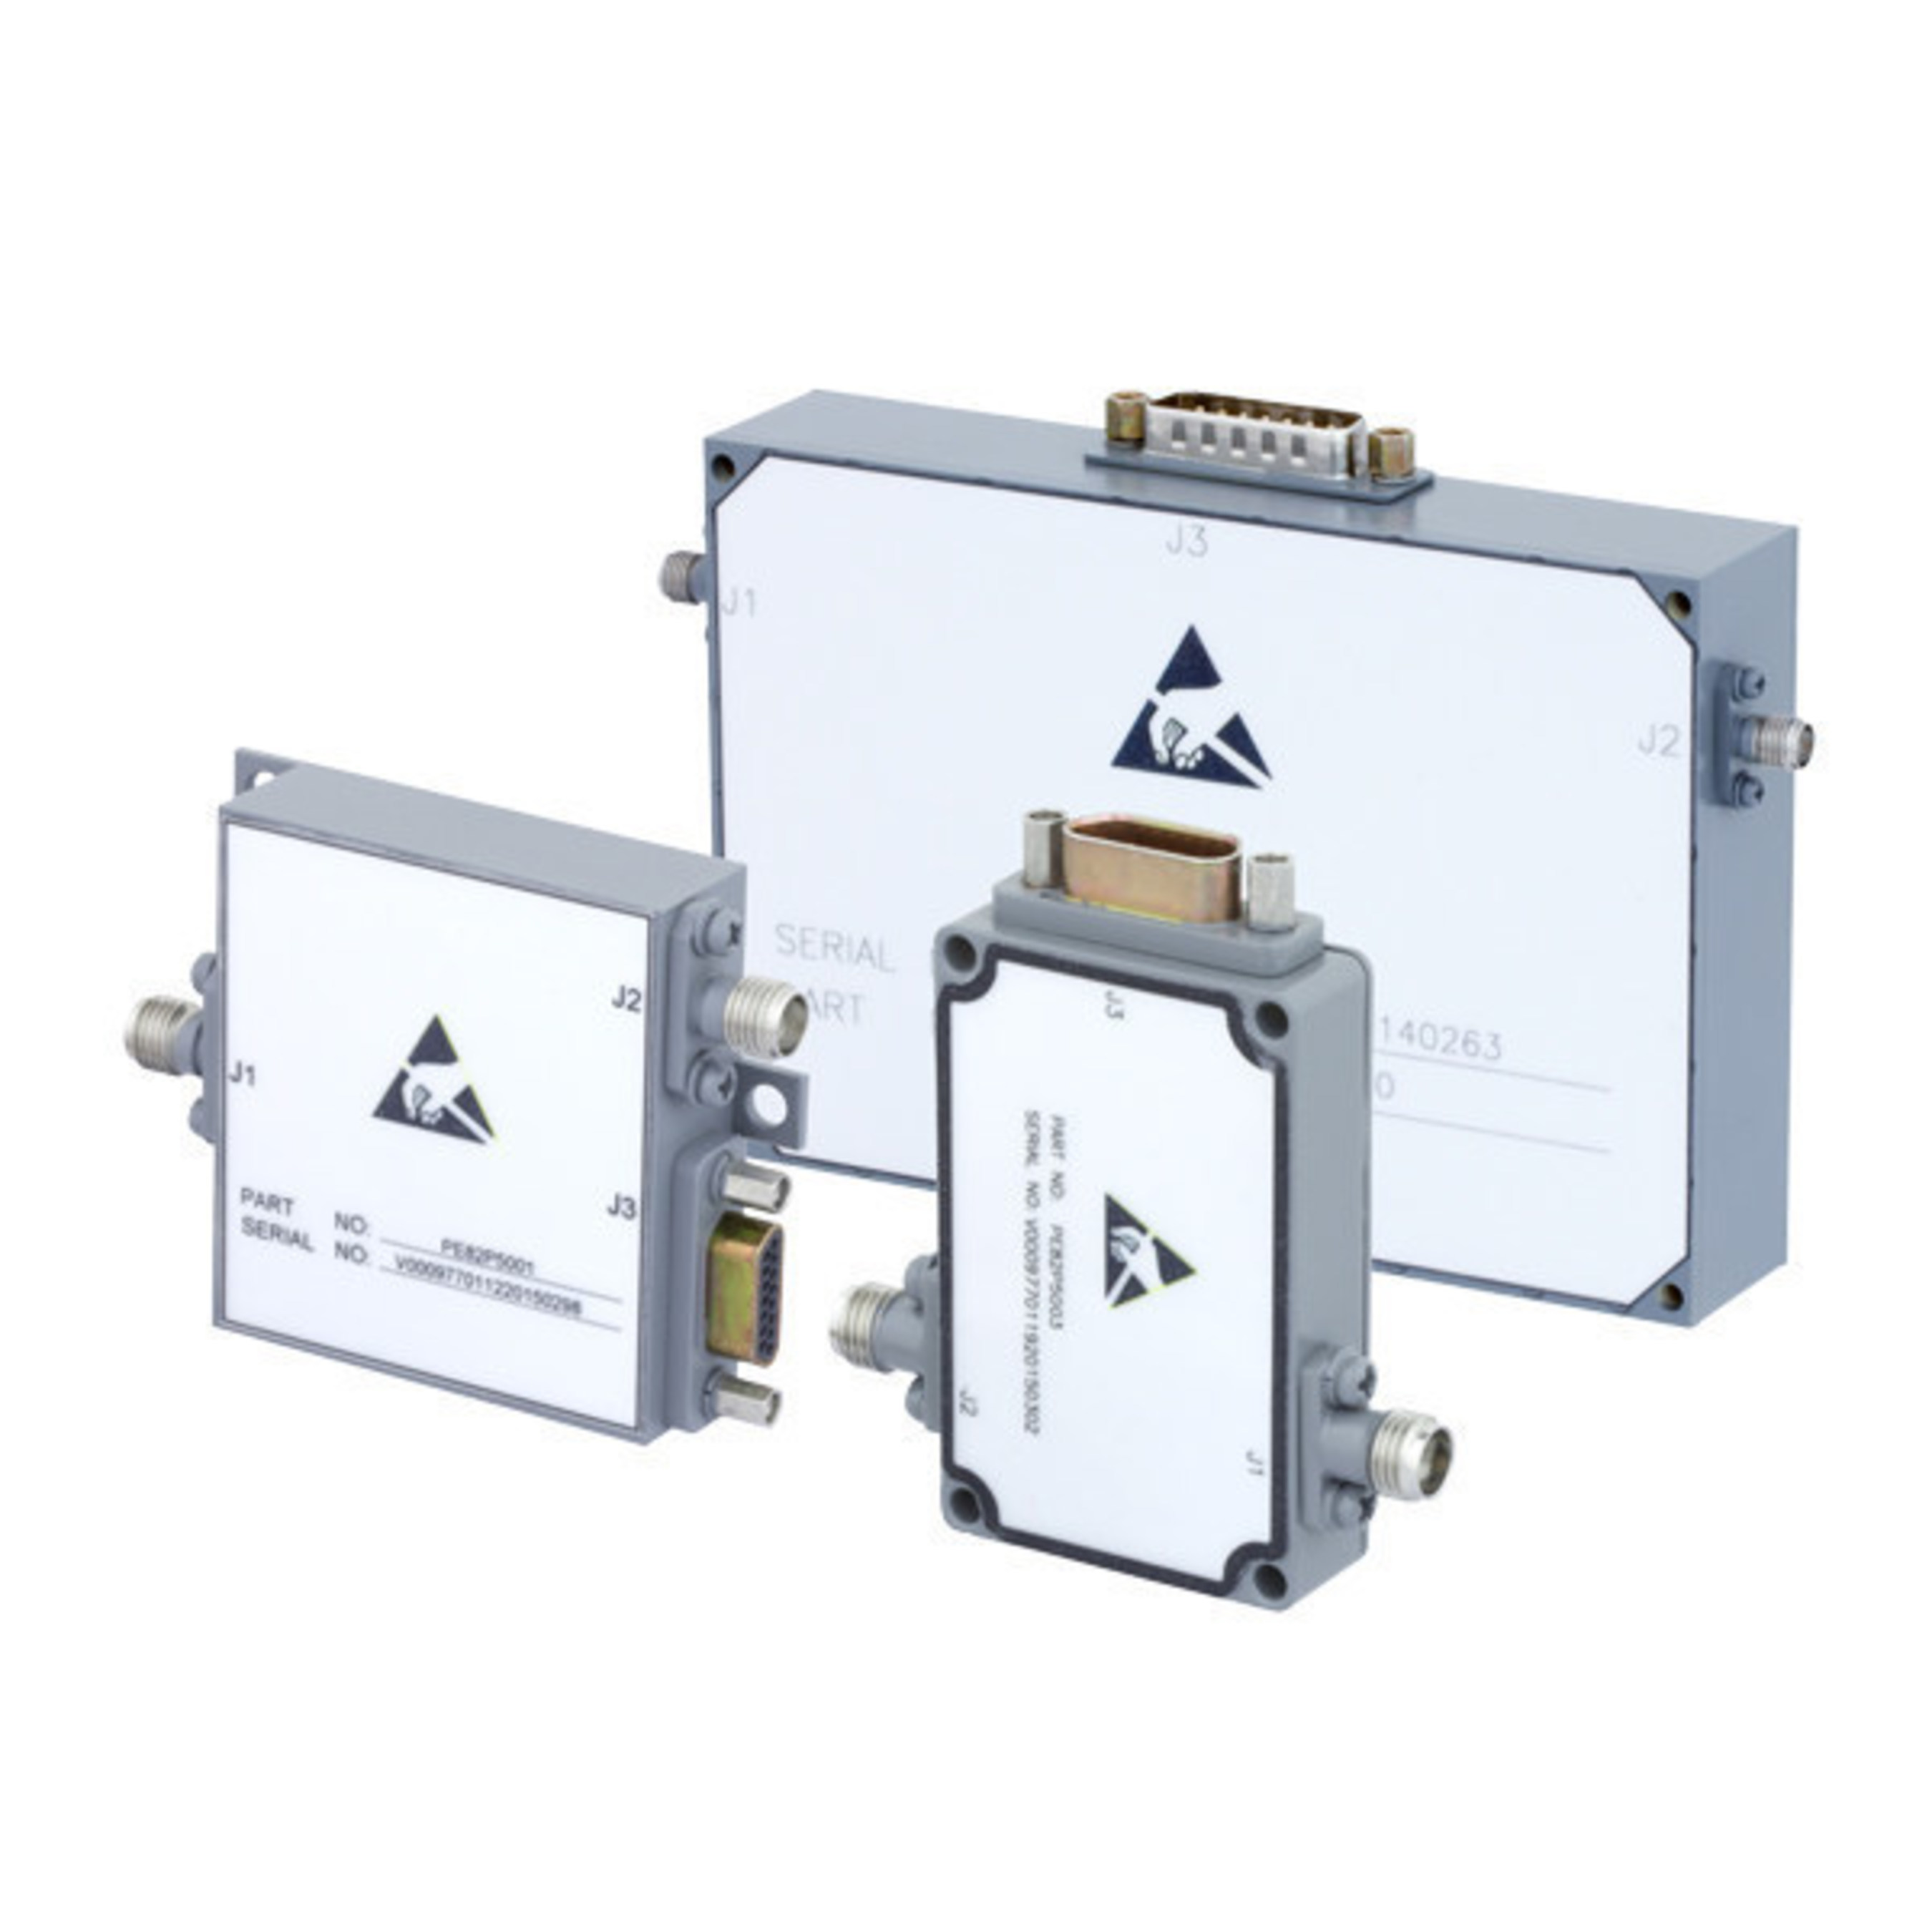 New 8-Bit Digital Phase Shifters from Pasternack Offer 360 Degrees of Highly Accurate Variable